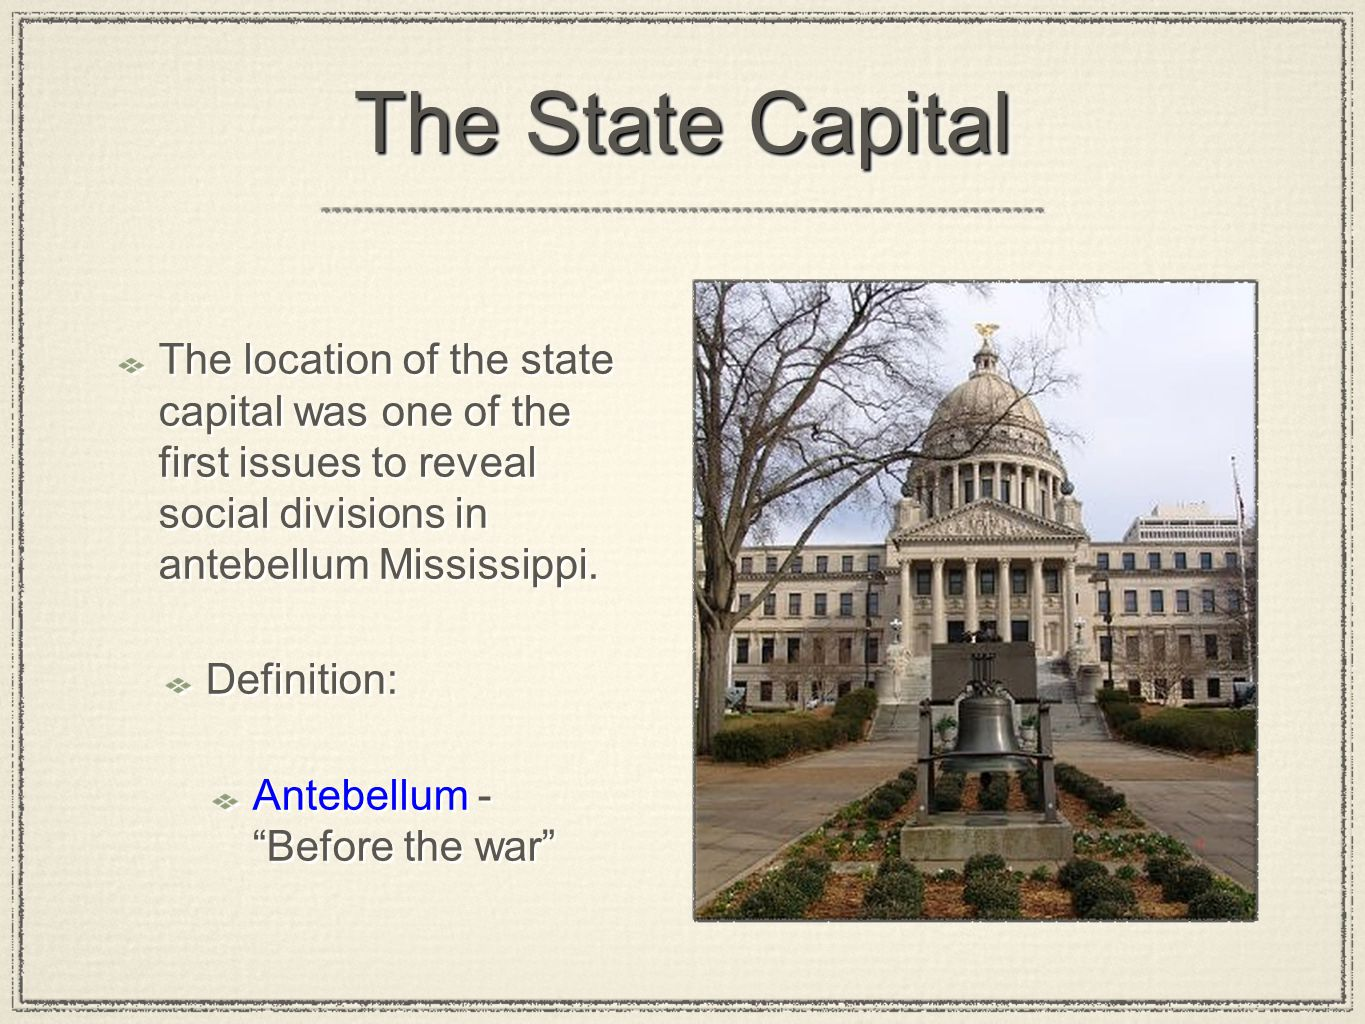 The State Capital The location of the state capital was one of the first issues to reveal social divisions in antebellum Mississippi. Definition: Ante